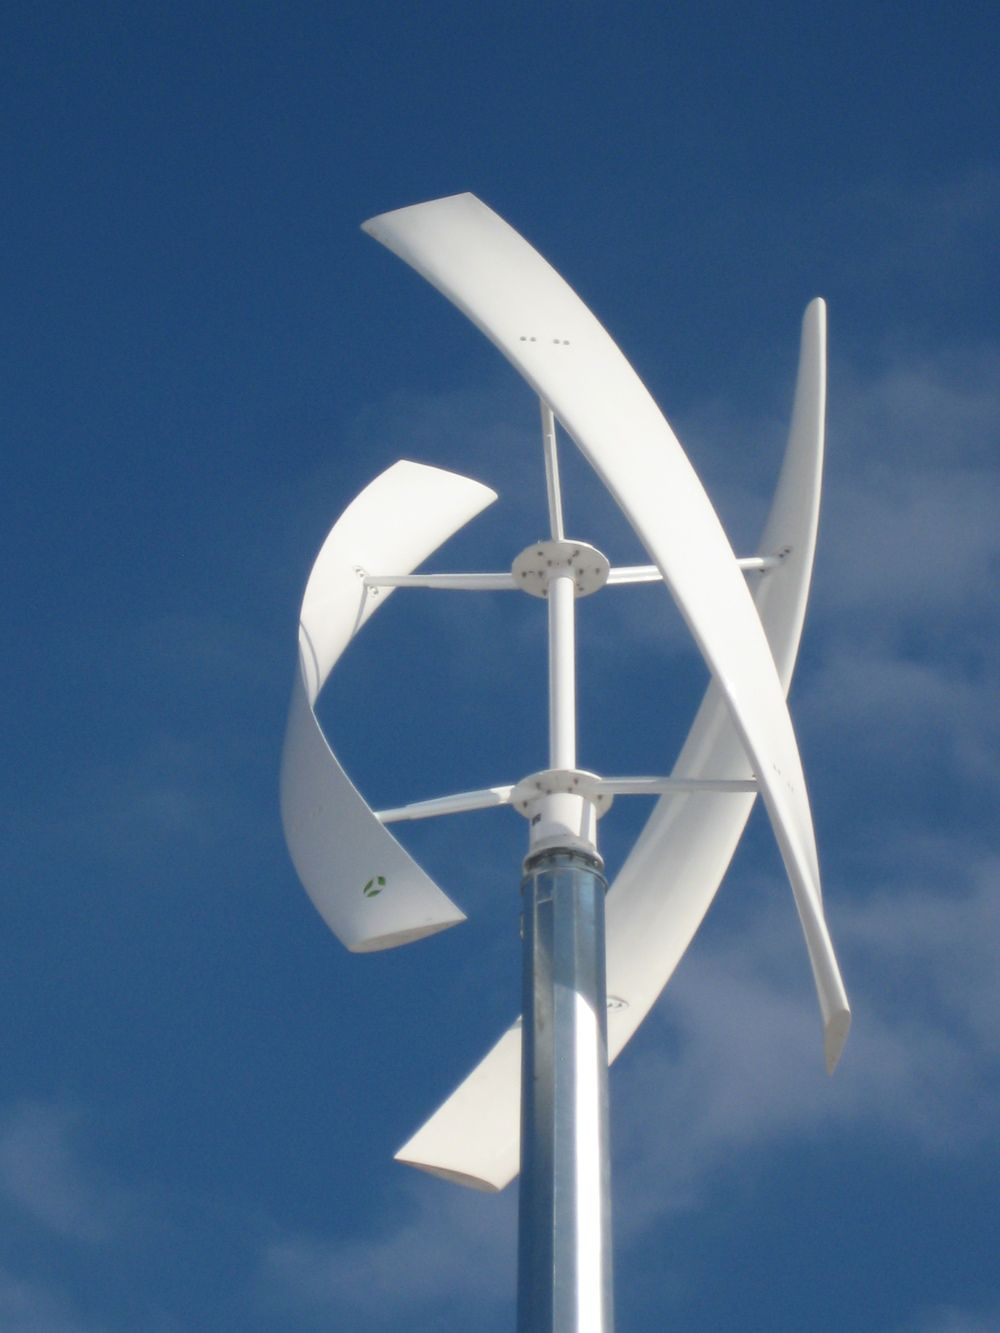 Vertical Omni Directional Wind Turbine Energie